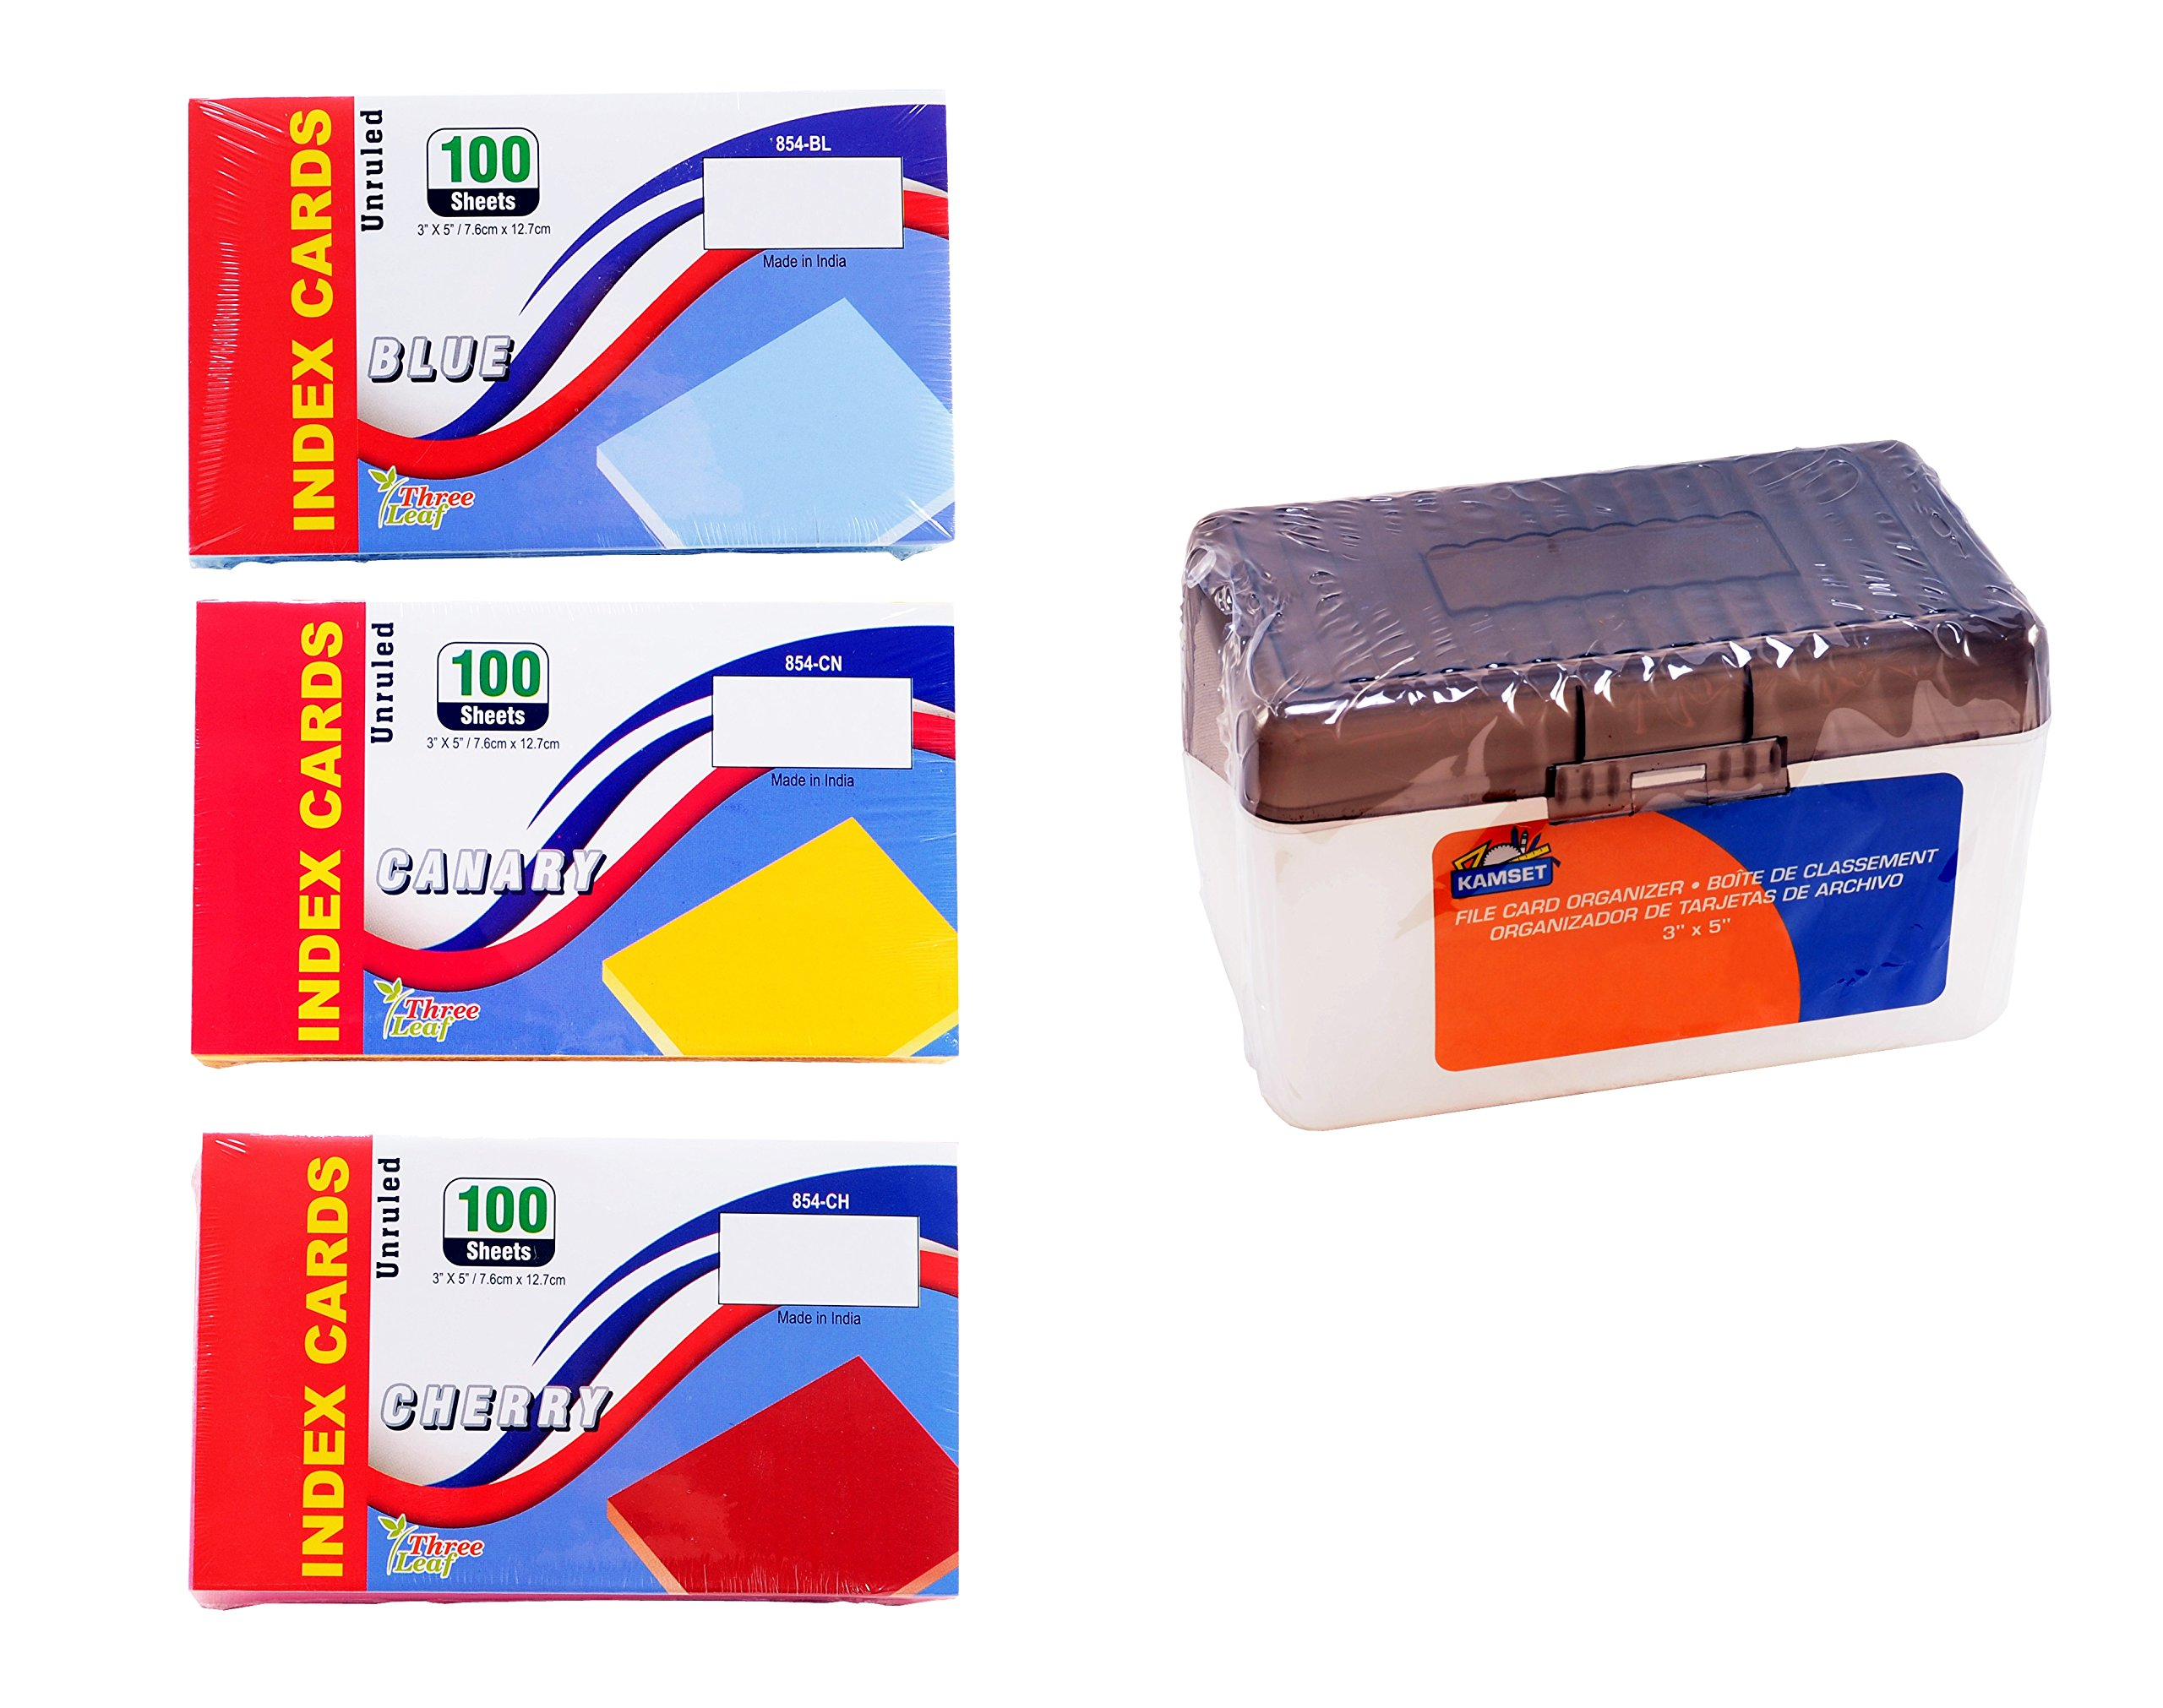 Colored Index Cards, 3x5-Inch, Unruled, Colors: Canary-Blue-Cherry - Plastic Index Card Case (Random Color: Black, Blue), Holds 300 Index Cards from Northland Wholesale. (3 Packs of 100, Index Case)